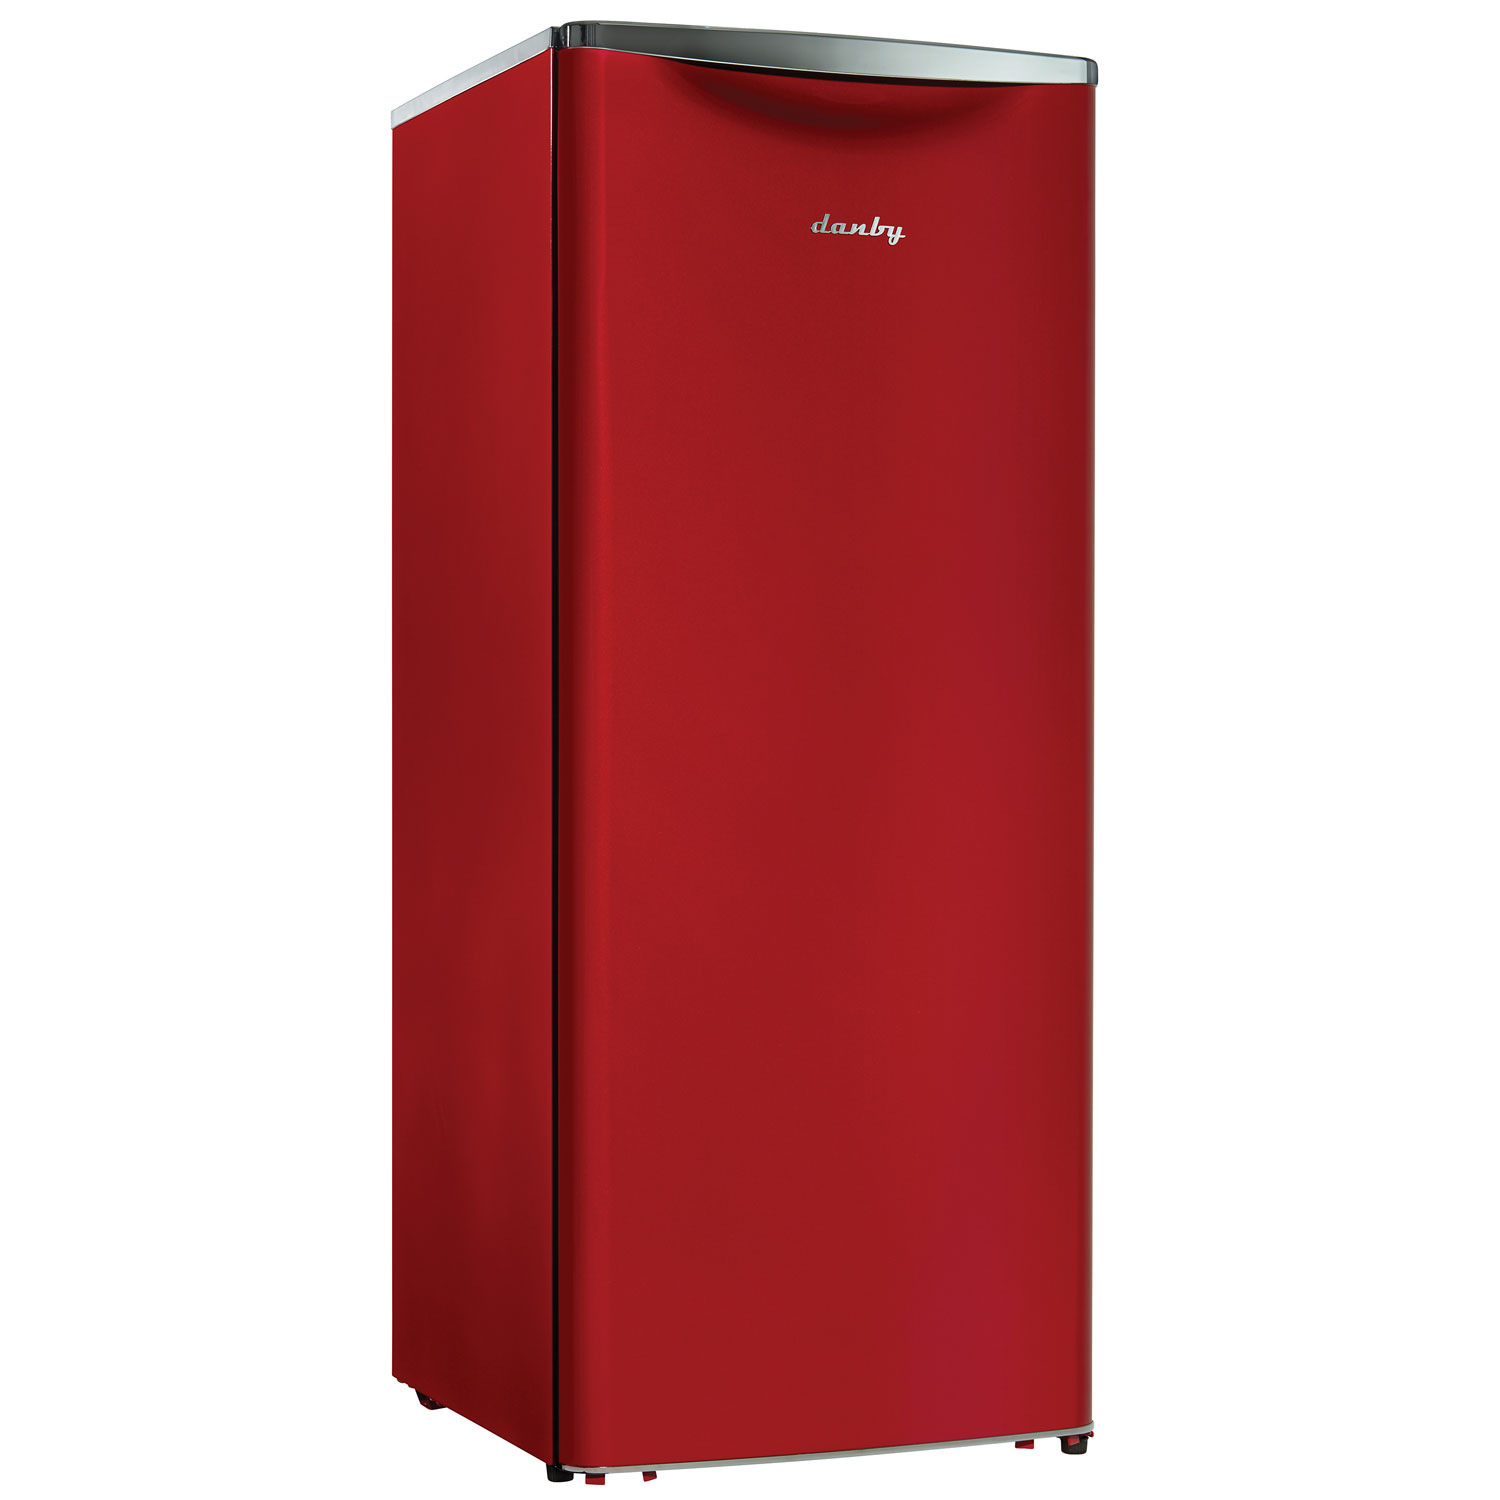 11 Cu. Ft. Frost Free Contemporary Classic All-Refrigerator - Red